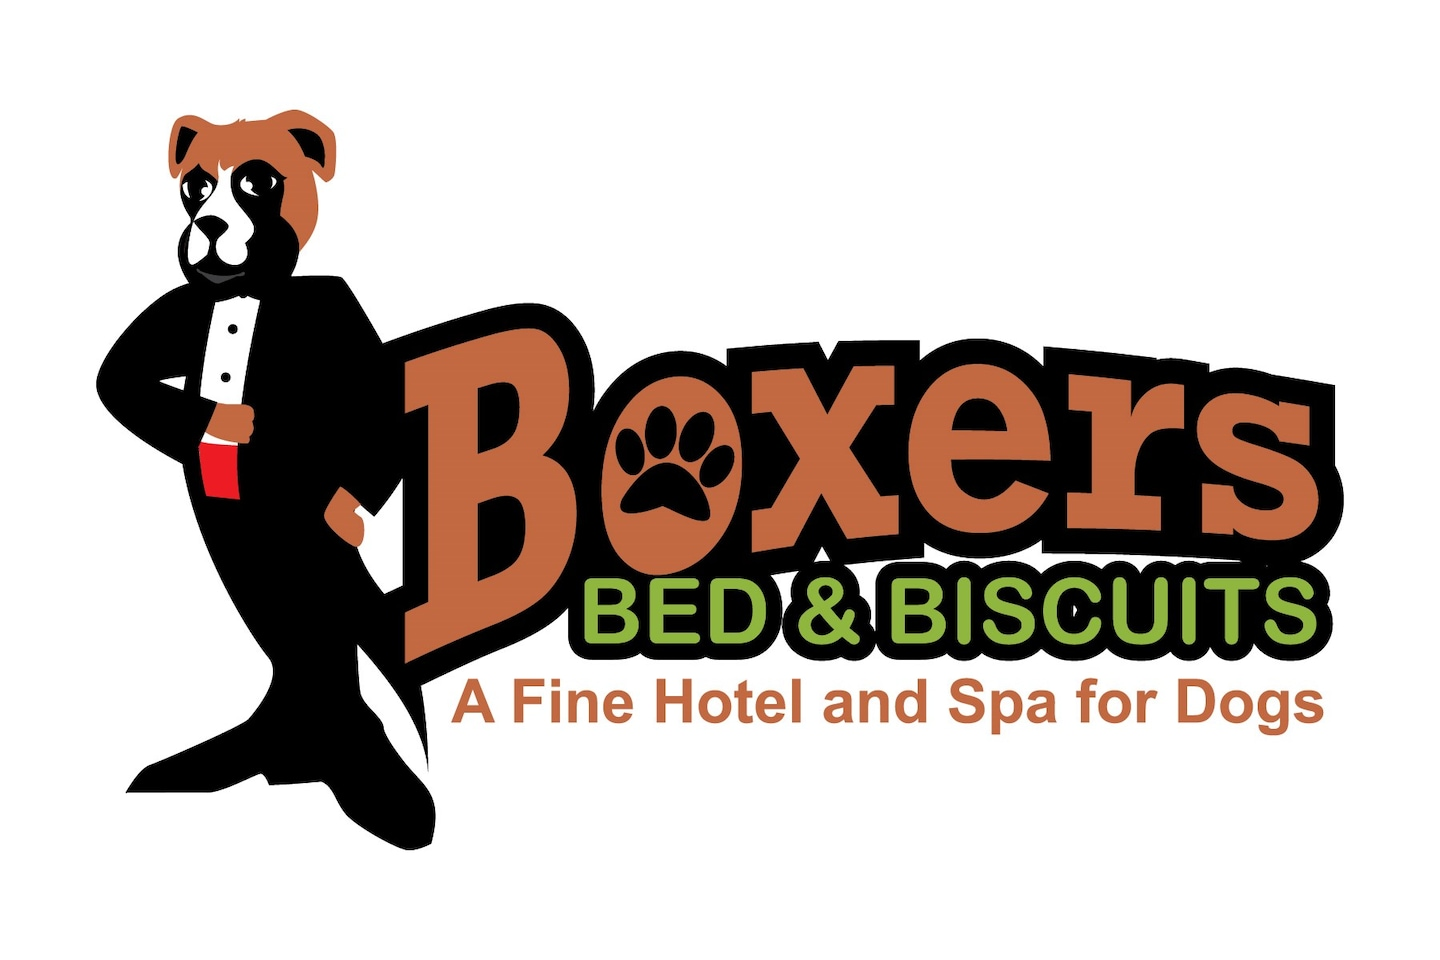 Boxers Bed & Biscuits